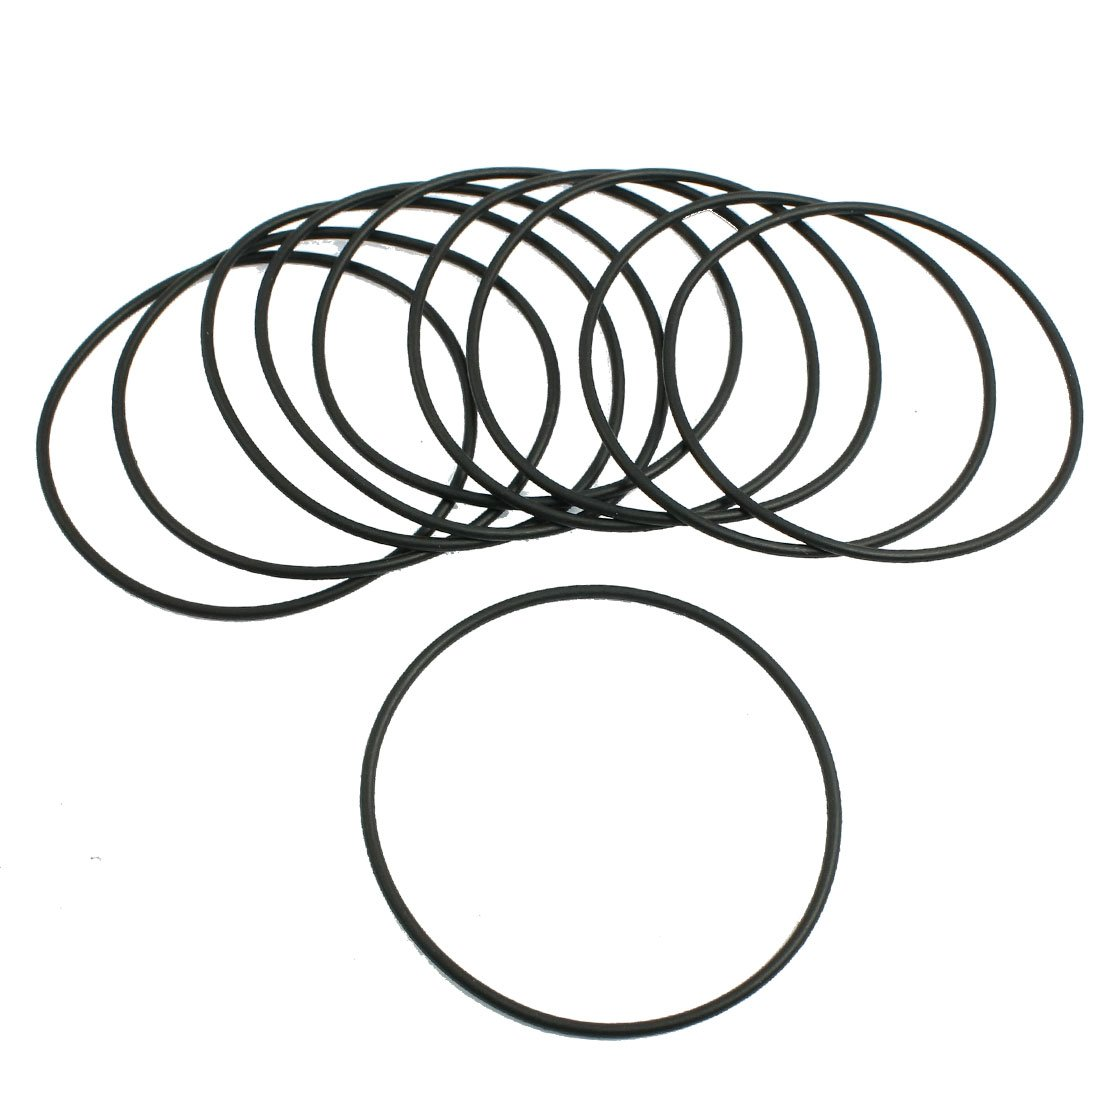 uxcell 2mm x 65mm Black Rubber Sealing O Ring Seal Washer Grommets 10 Pcs